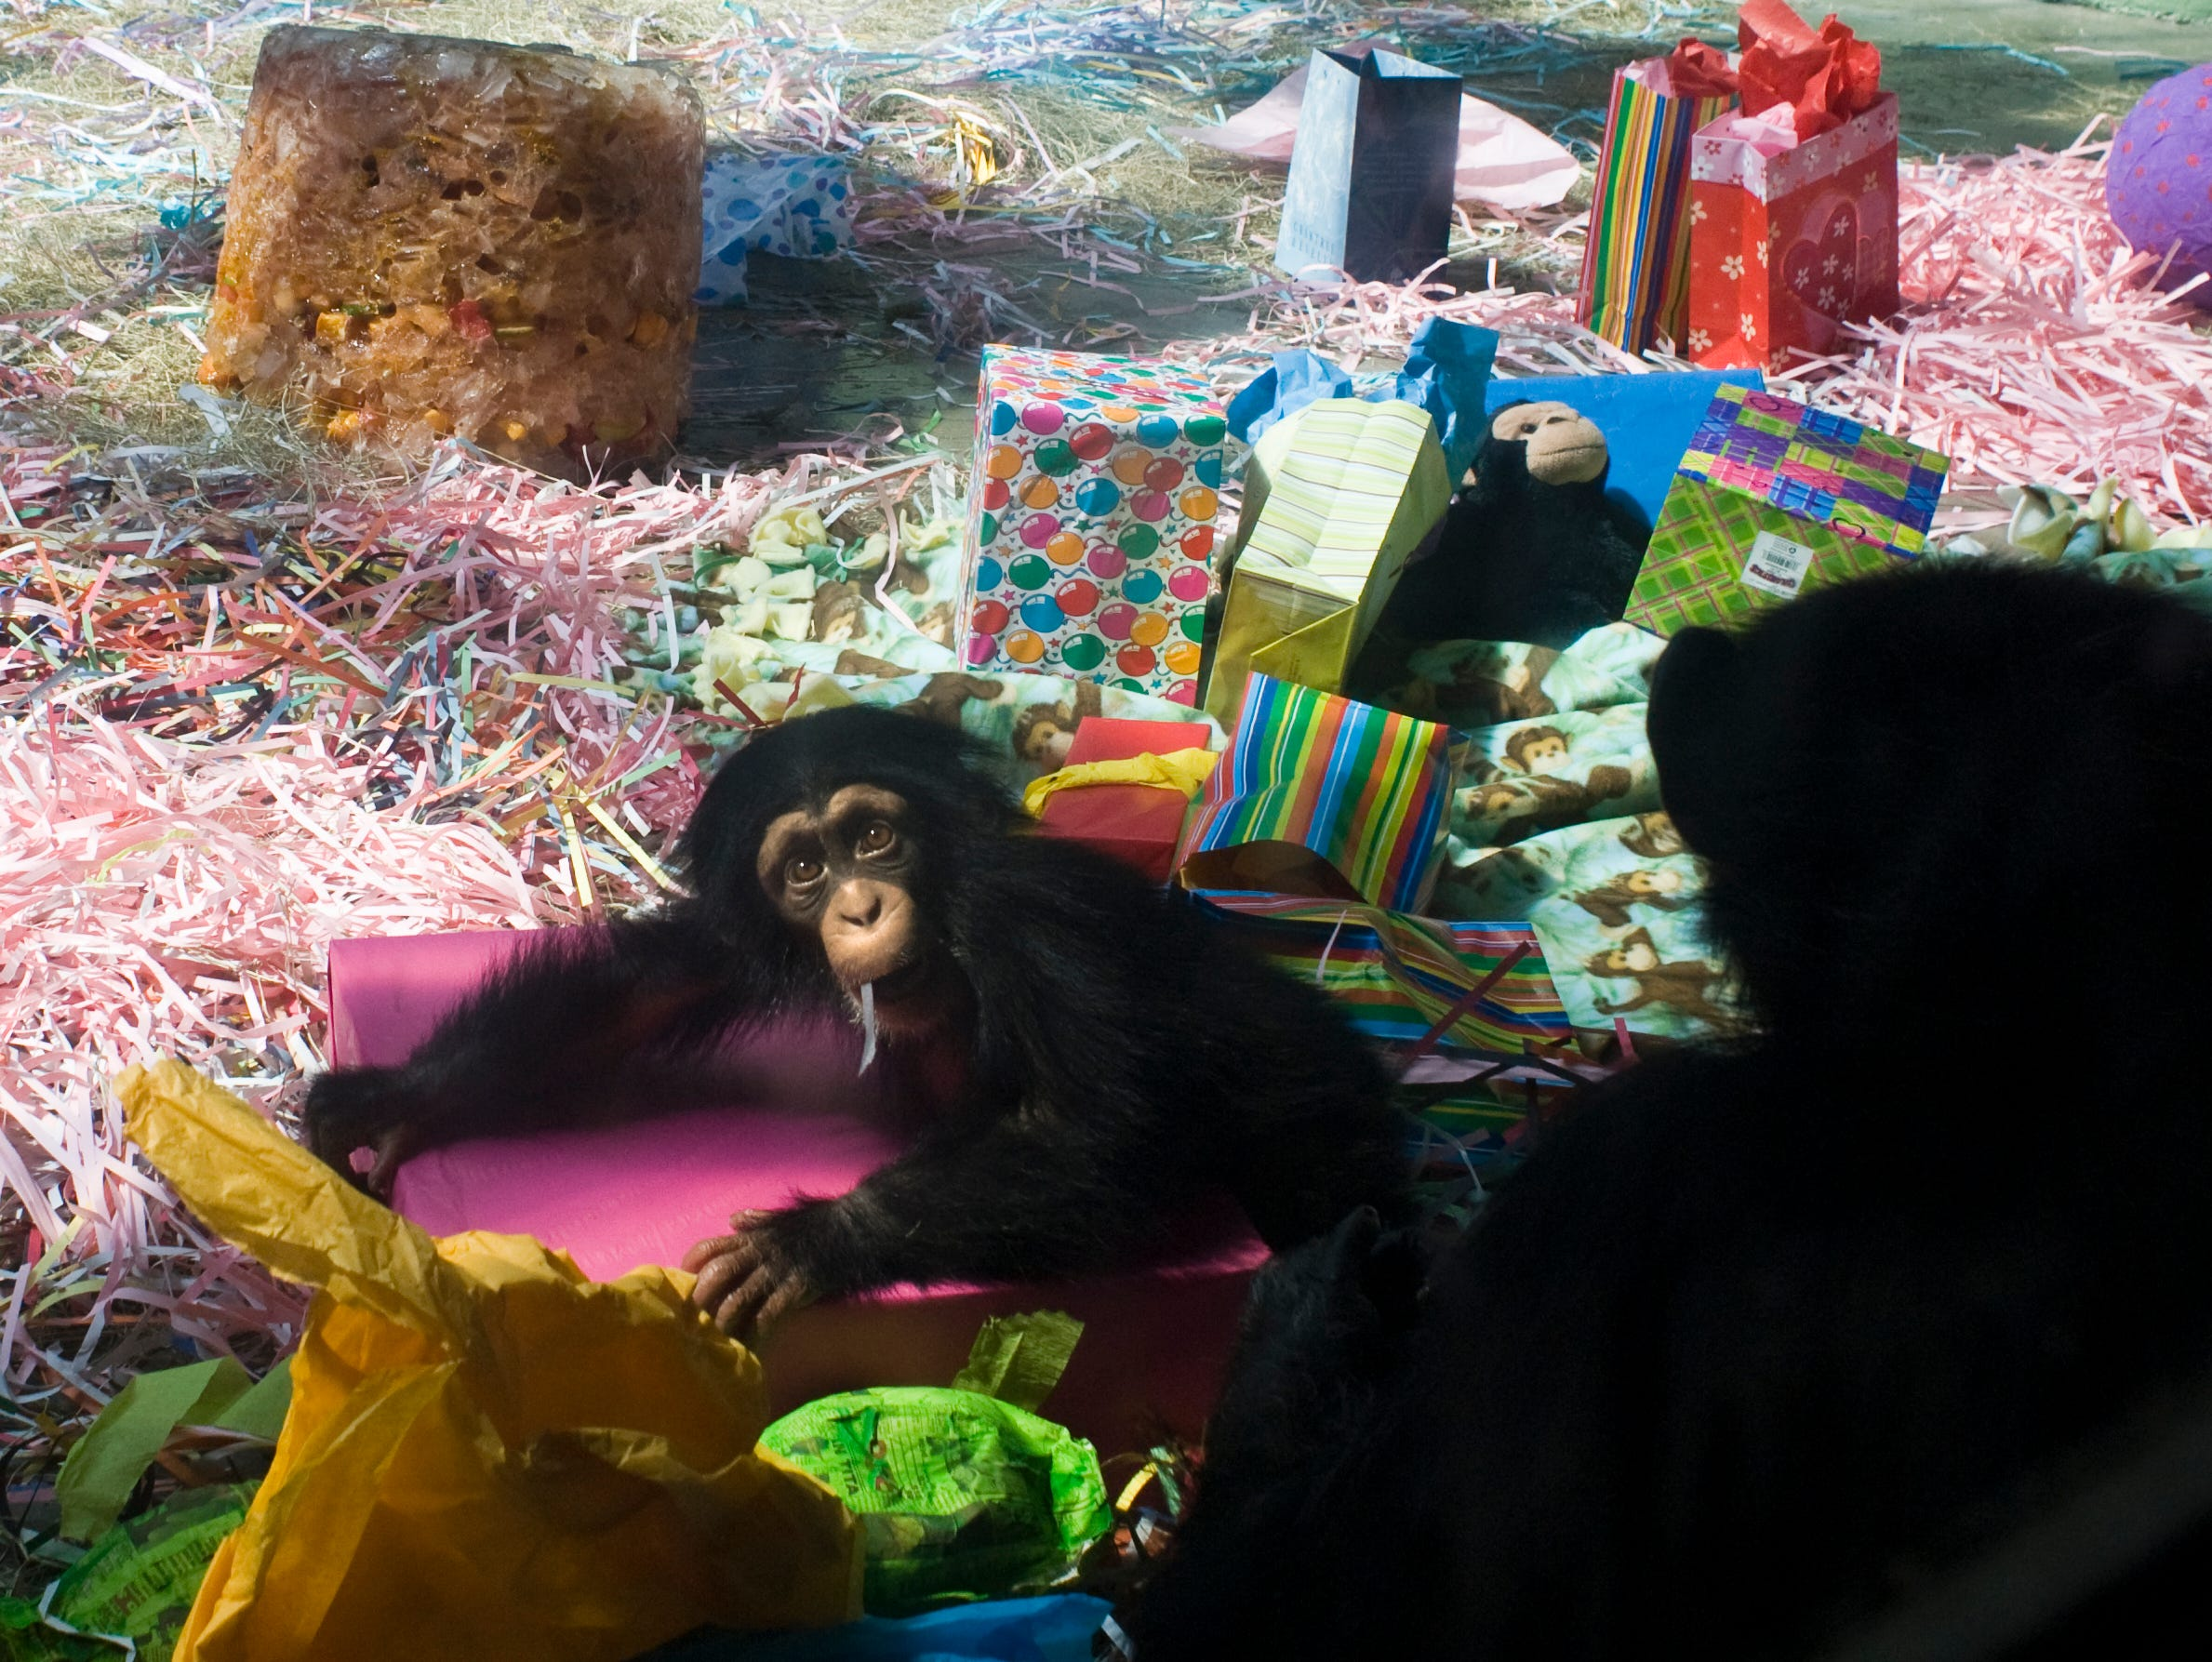 "Knoxville Zoo's baby chimpanzee, George, celebrated his first birthday on Saturday, July 18, 2009. The chimpanzee exhibit was decorated with colorful streamers, plates, presents and even a ""birthday cake"" made of frozen fruits.